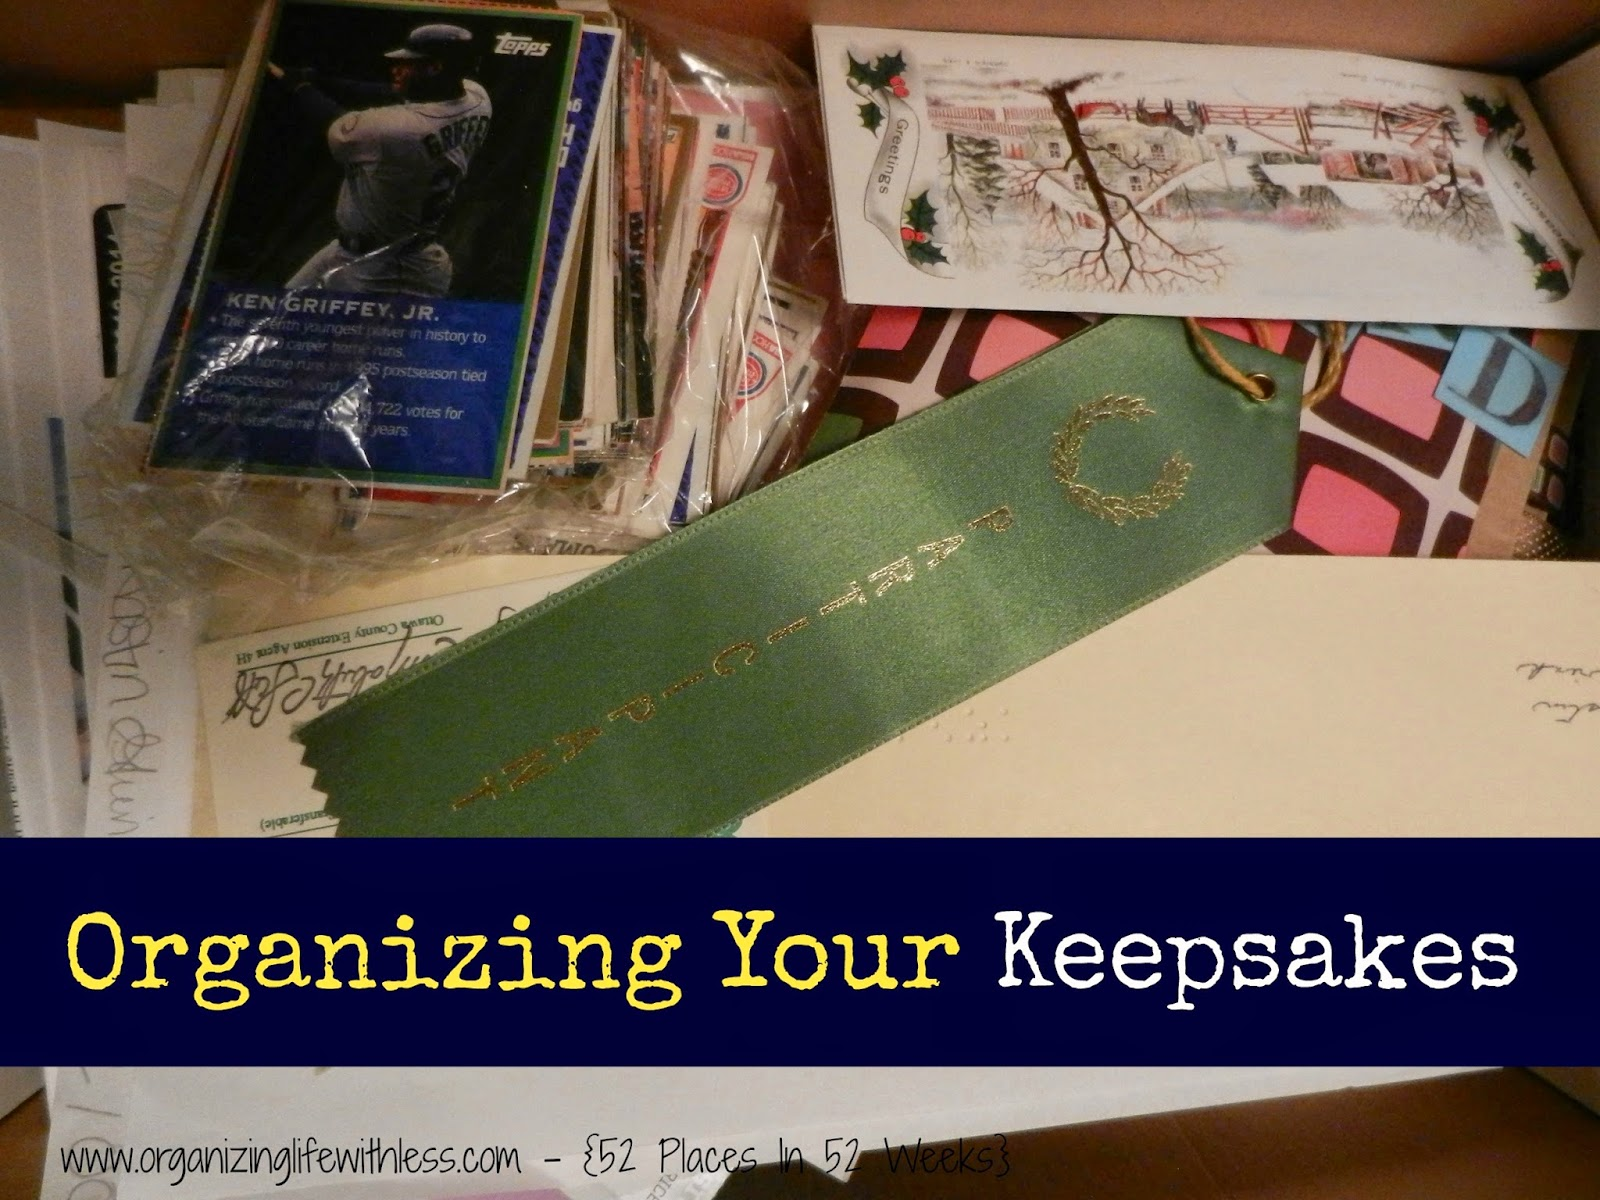 52 Places In 52 Weeks: Organizing Your Keepsakes